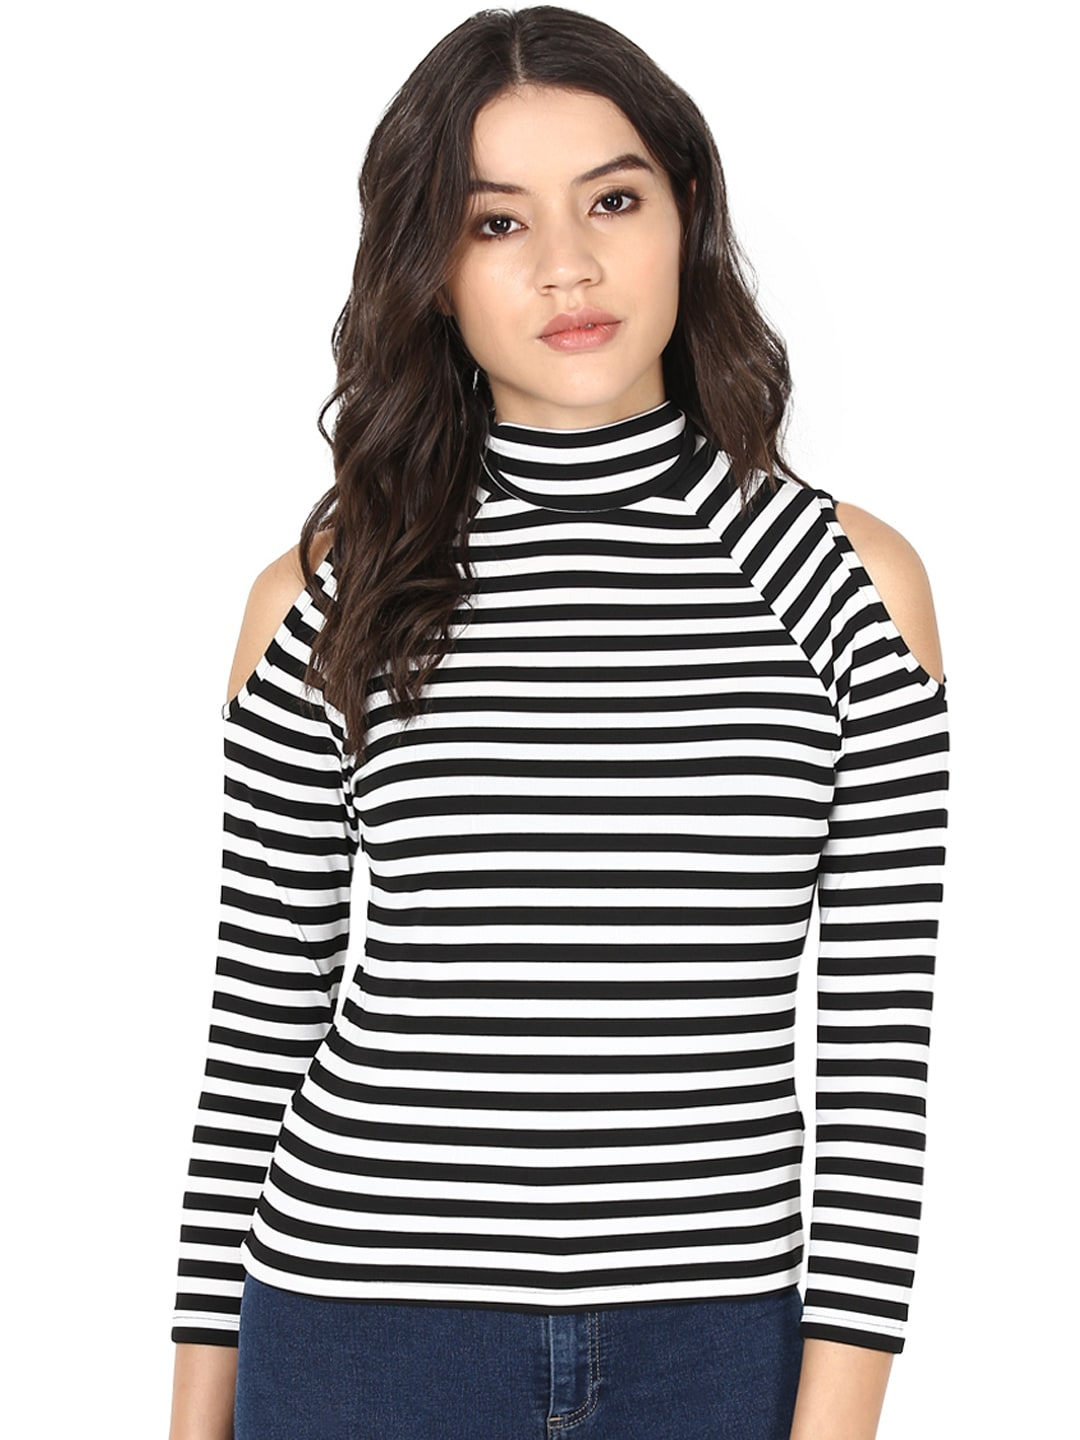 77e4d7b2243419 Harpa Long Sleeve Tops - Buy Harpa Long Sleeve Tops online in India